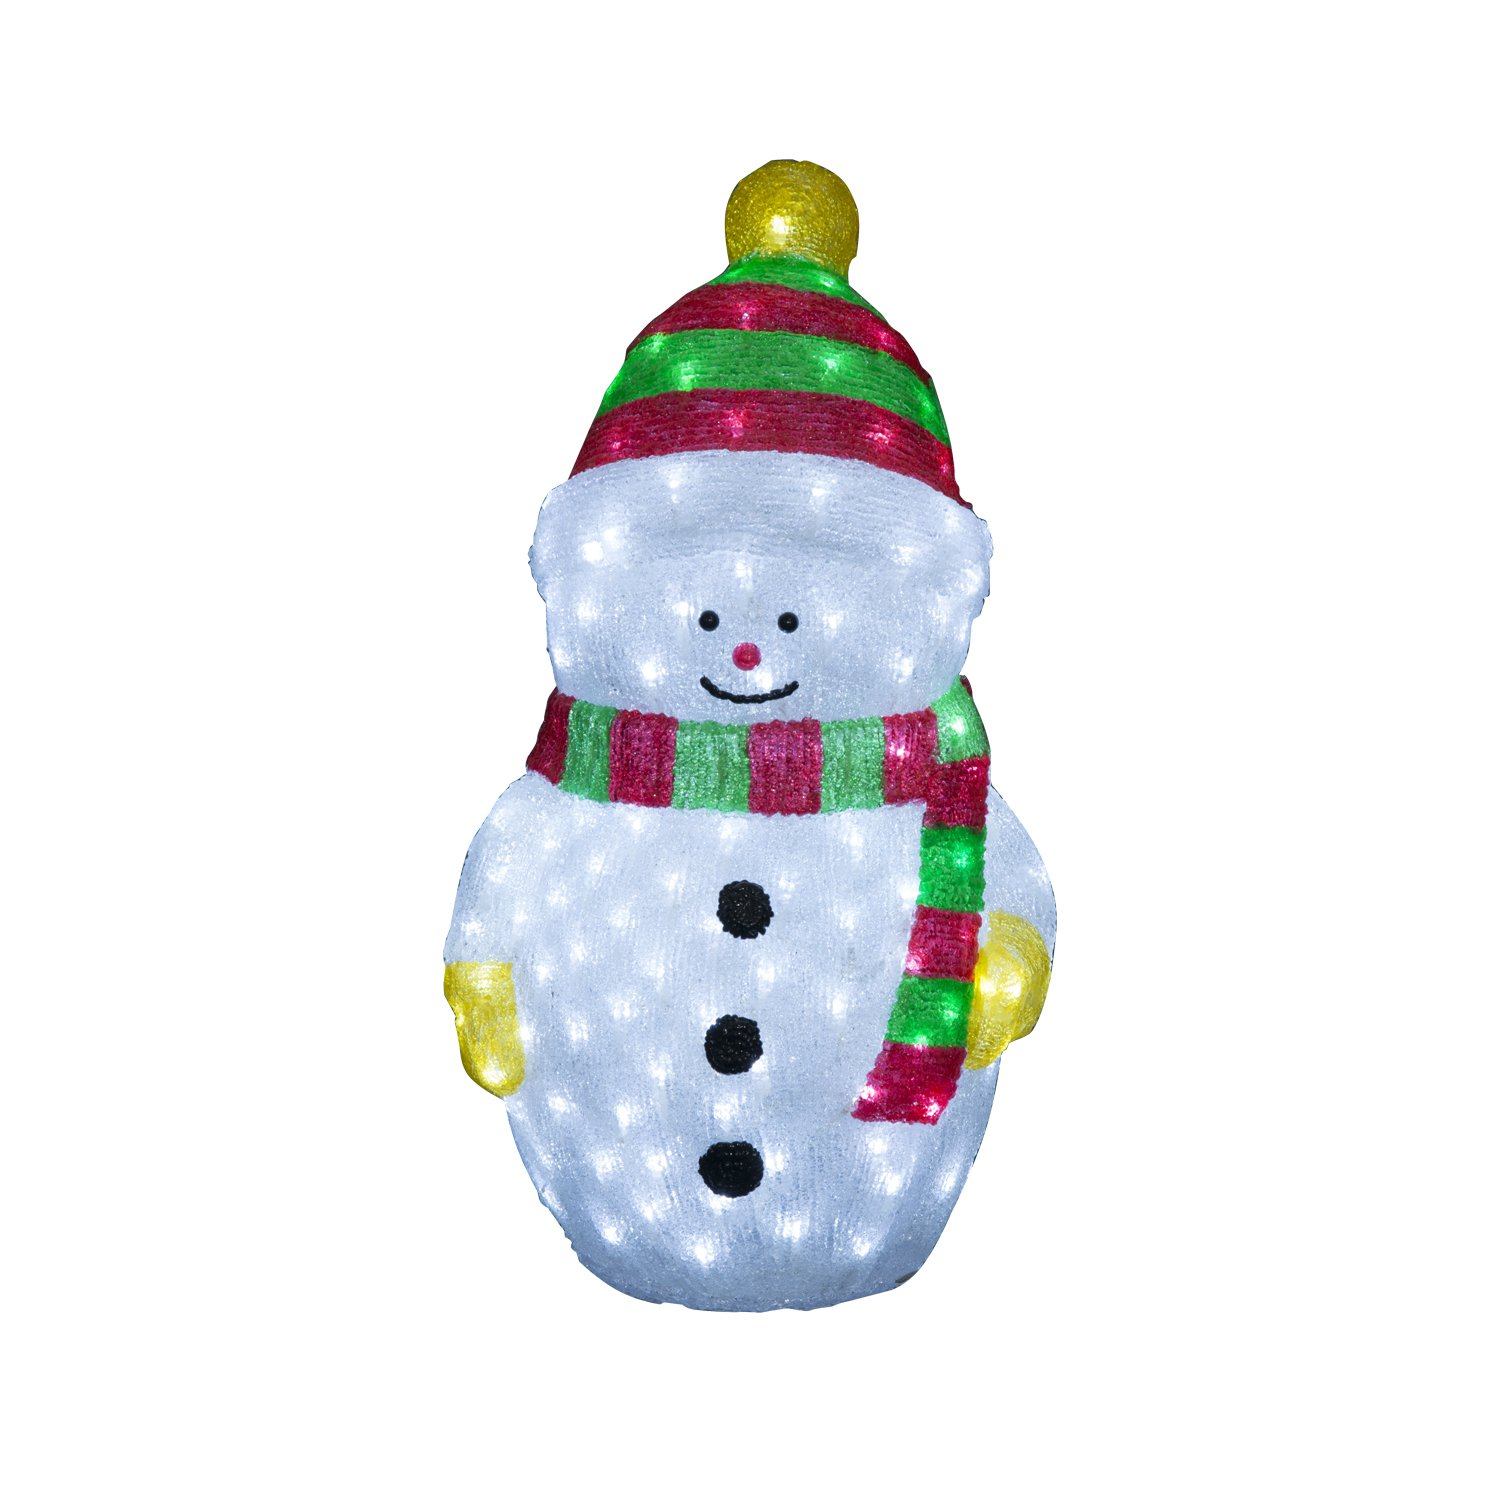 "HomCom 24"" LED Lit Holiday Christmas Decoration Light - Green and Red Snowman at Sears.com"